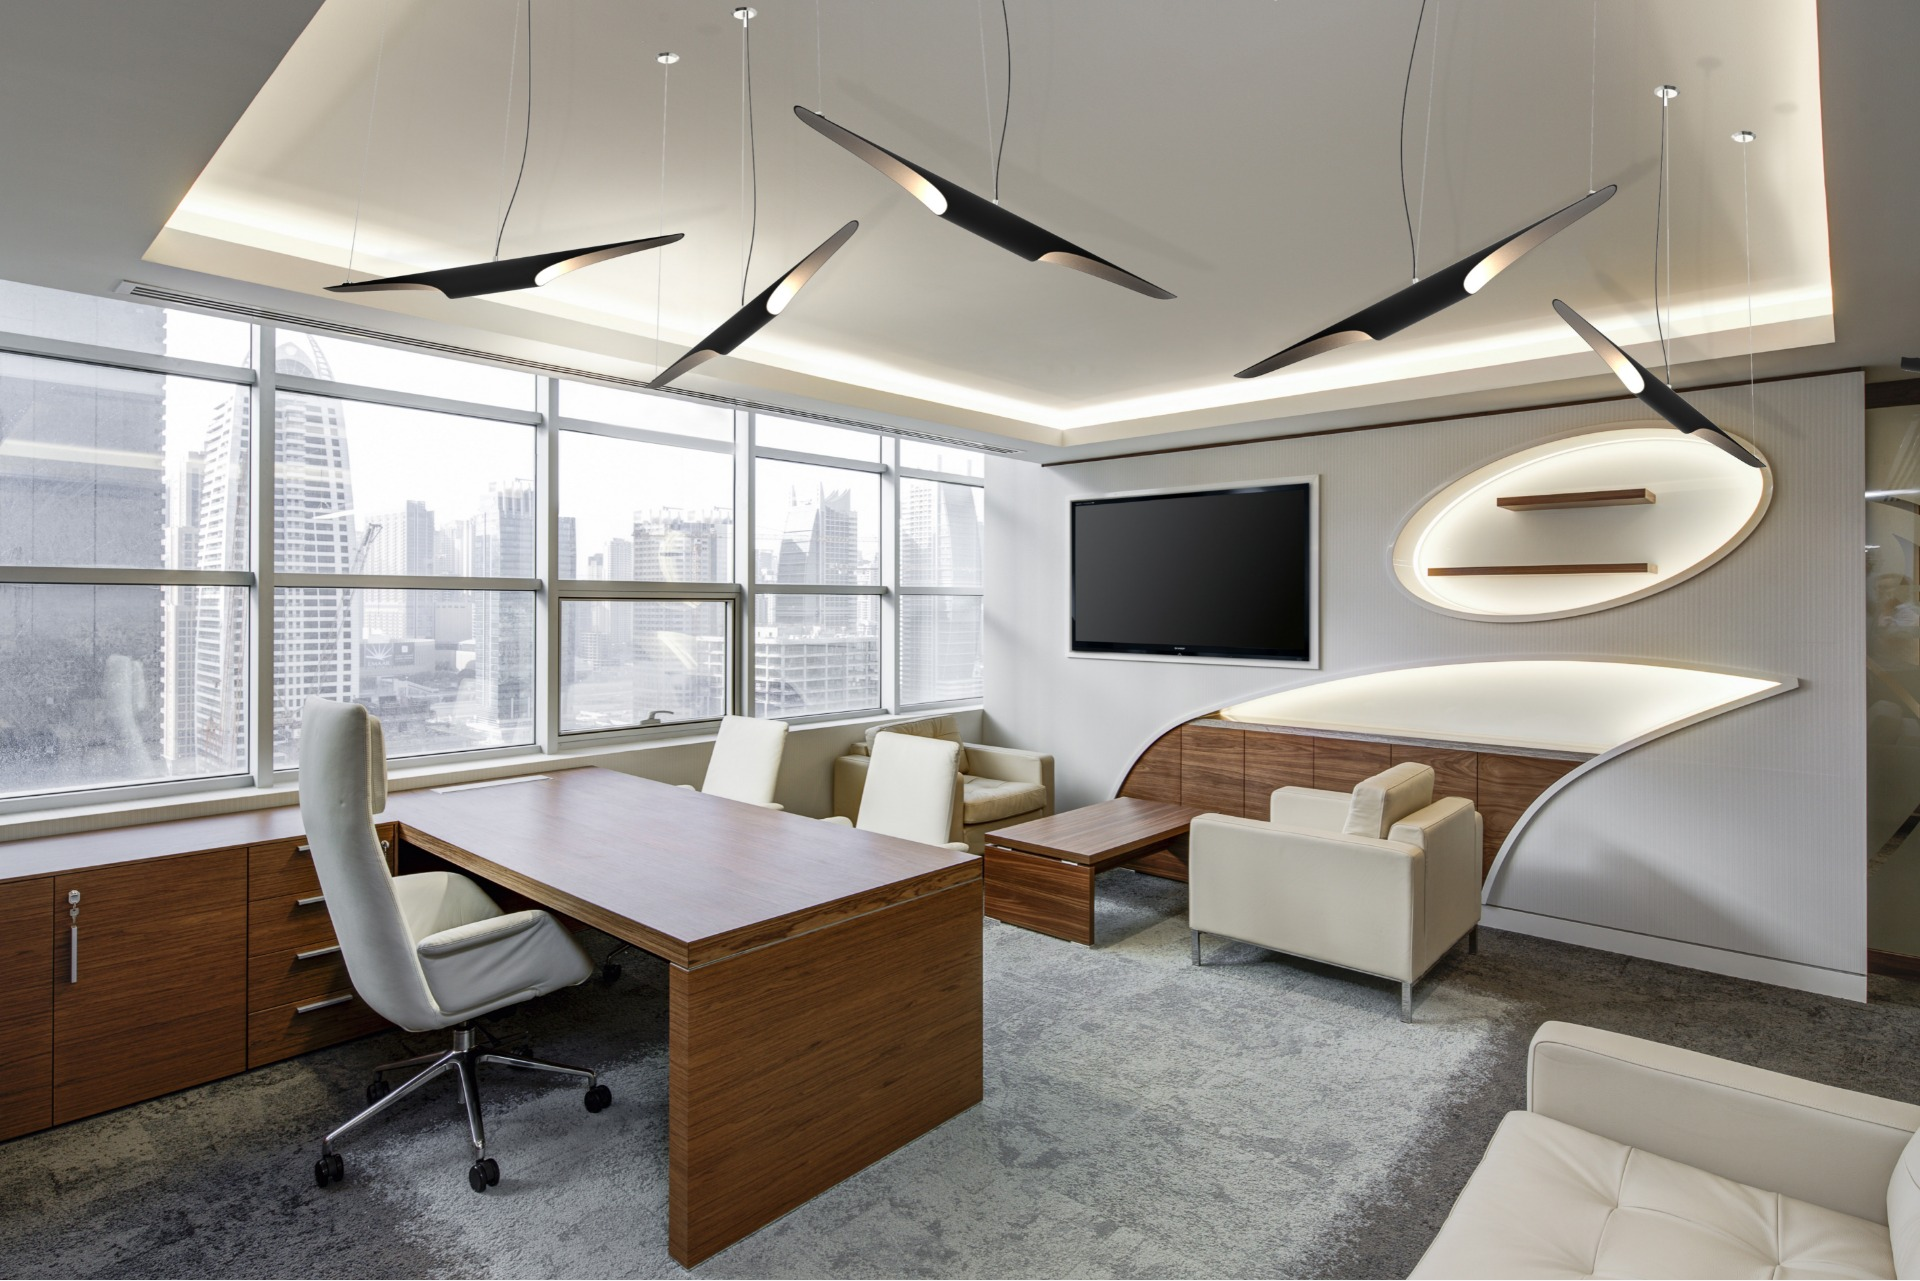 corporate office décor What's Hot On Pinterest Corporate Office Space Décor! Whats Hot On Pinterest Corporate Office Space D  cor3